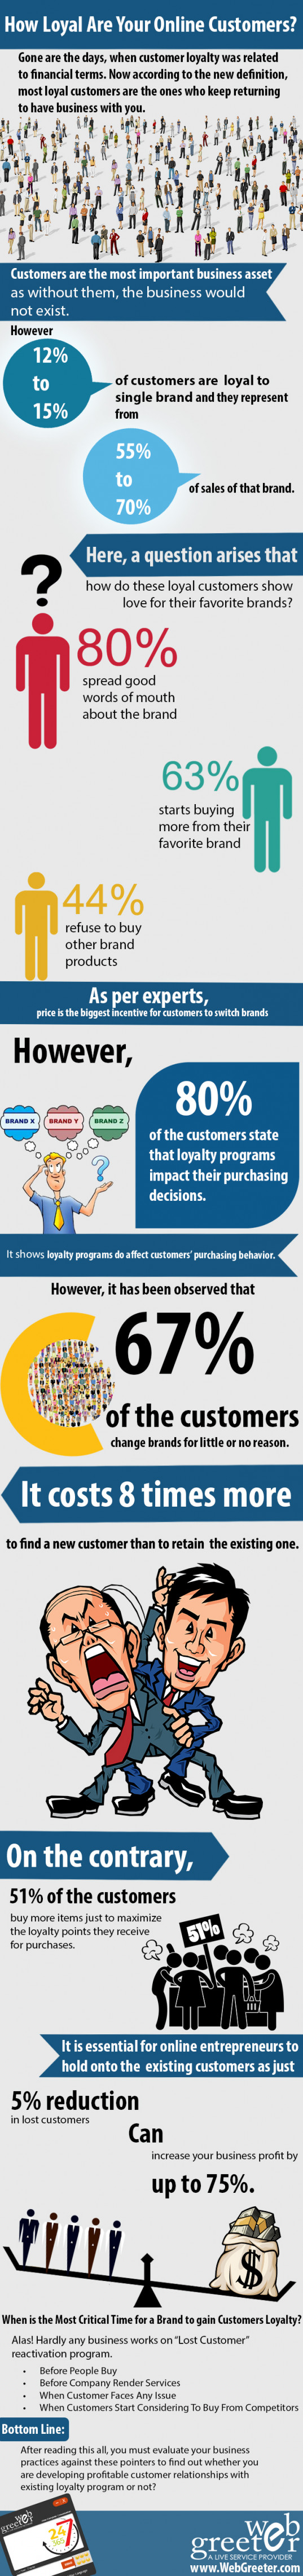 How Loyal Are Your Online Customers?